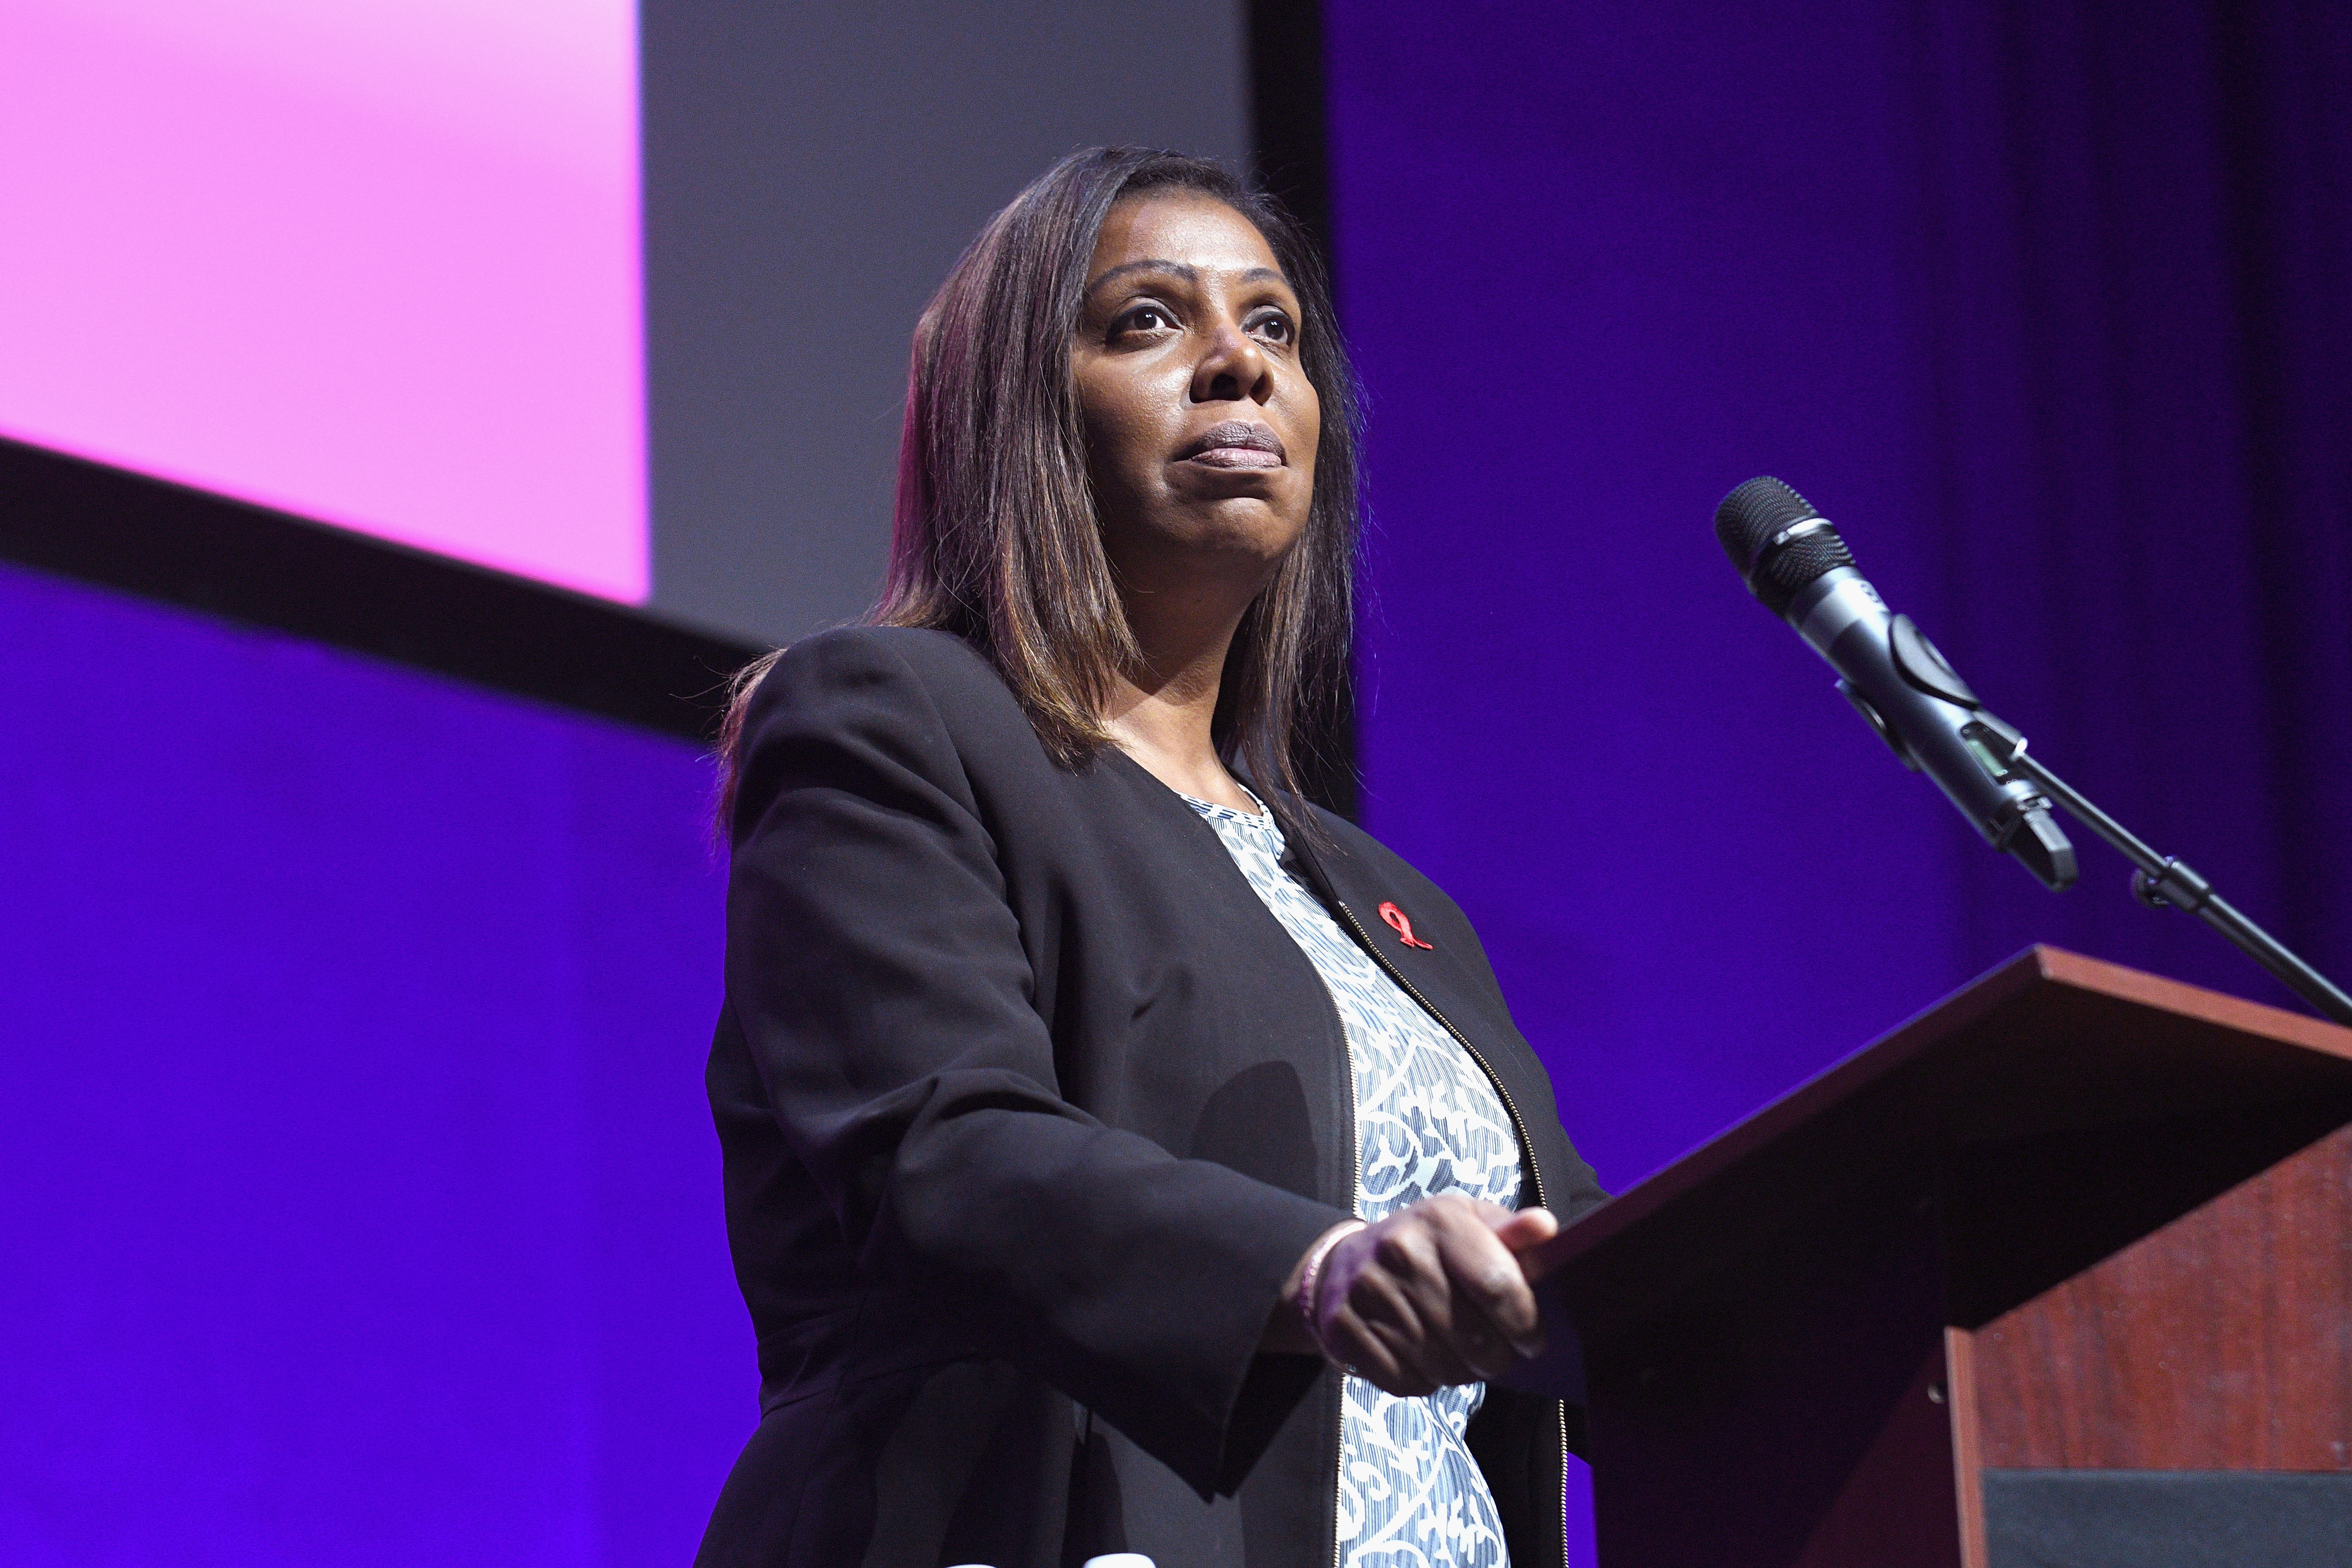 Letitia James wins the New York attorney general primary. She could be the first black woman ever elected to the job.